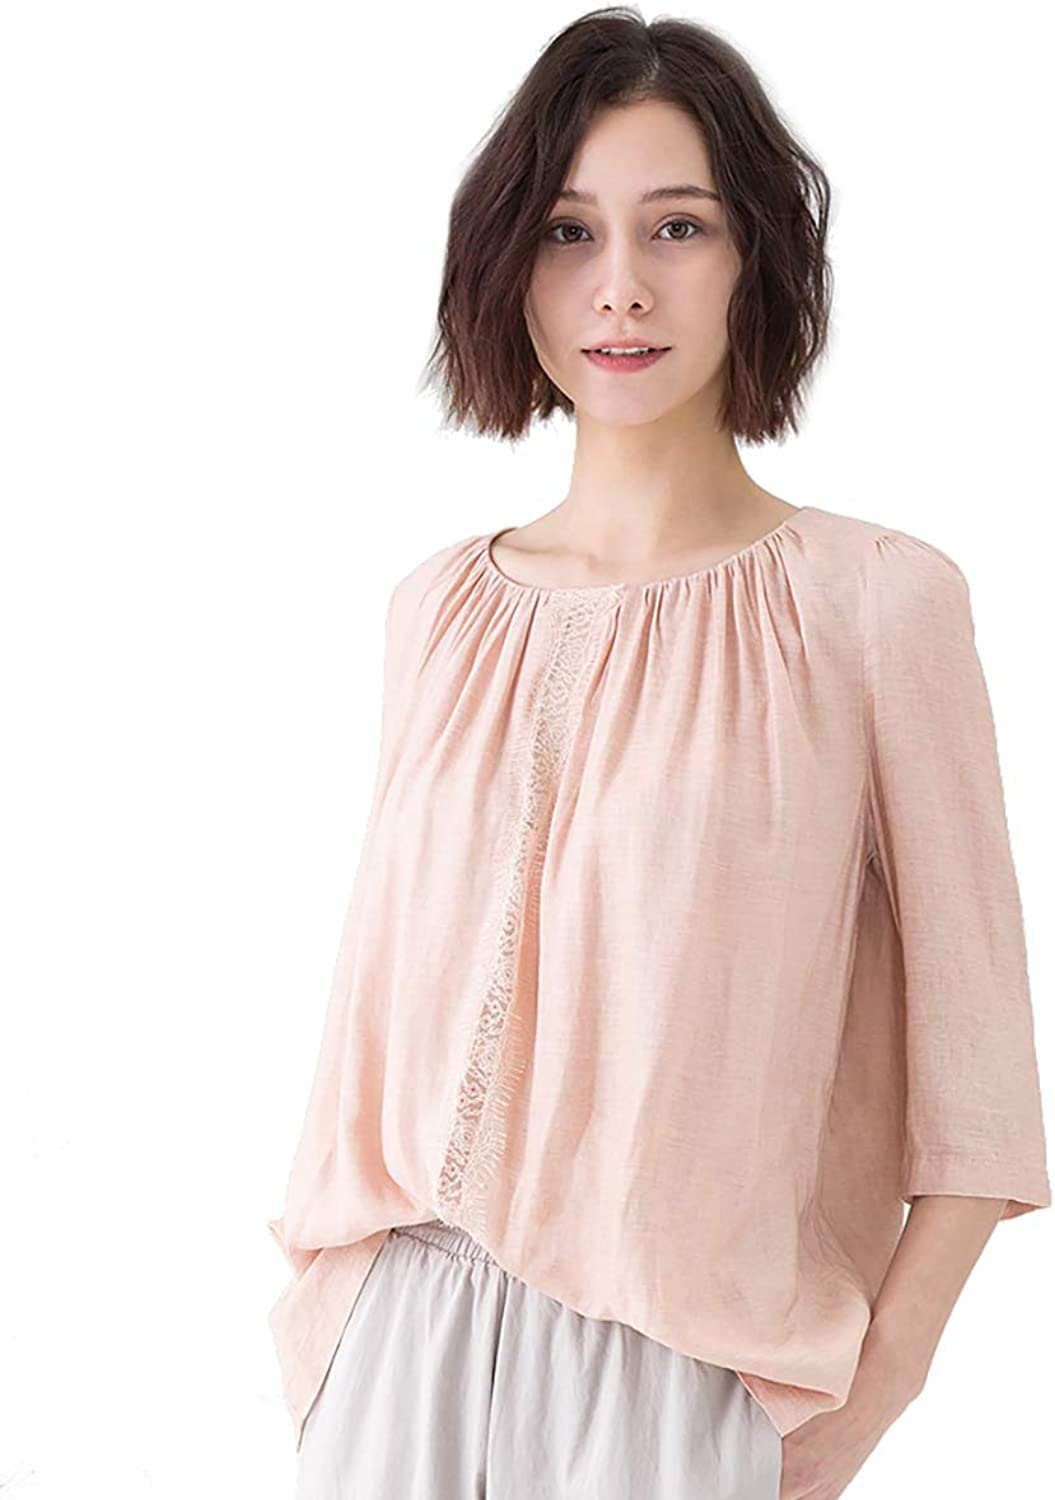 Amazhiyu Womens 3 4 Sleeve Blouses Top Cotton Linen ONeck Pleated Summer Casual Hollow Lace up Tee Shirts for Junior Ladies